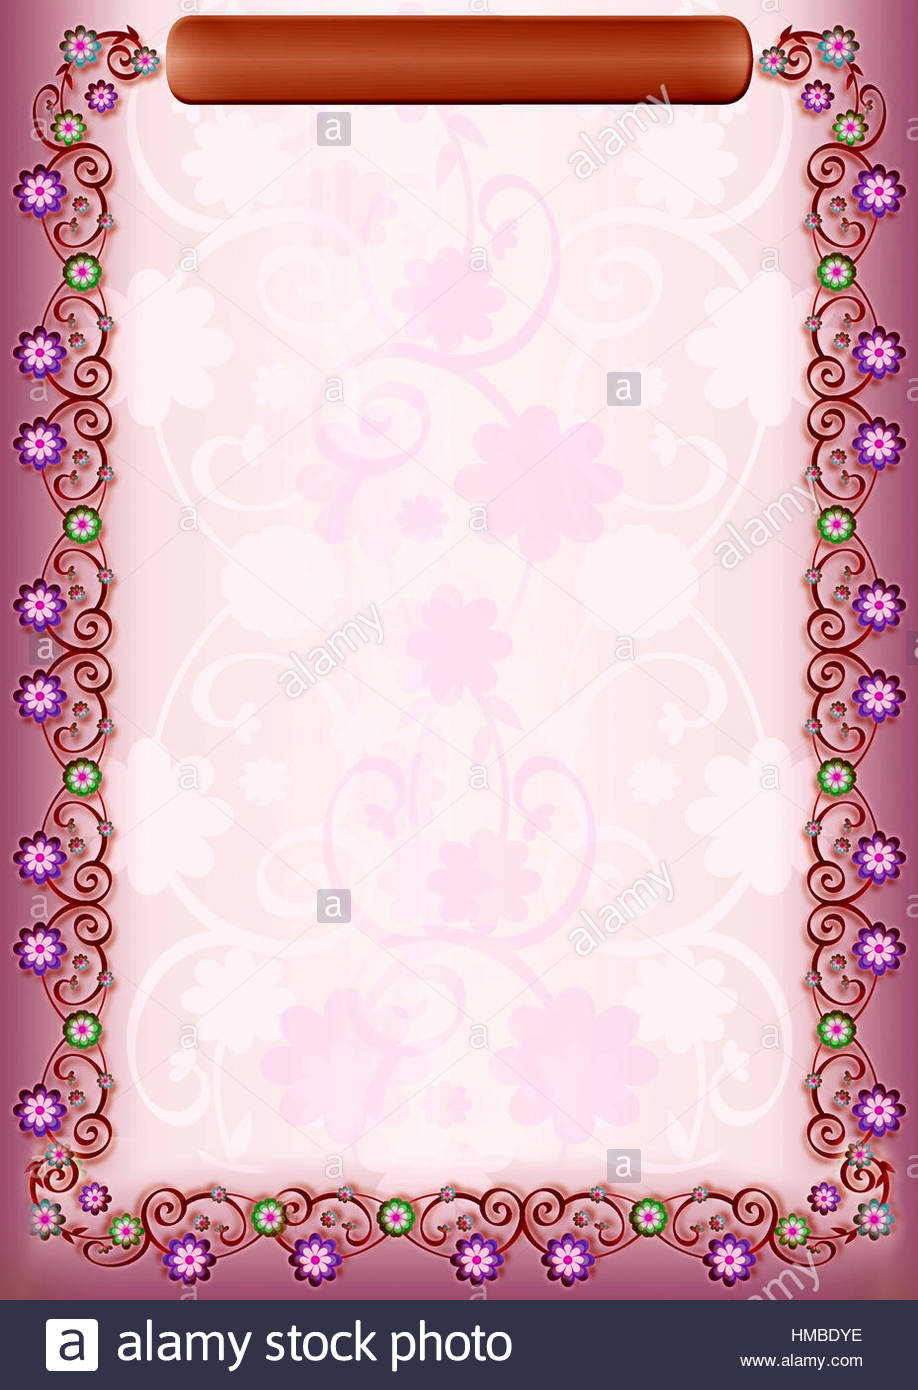 Pink Floral Portrait Frame With Flower Borders On Both Sides And